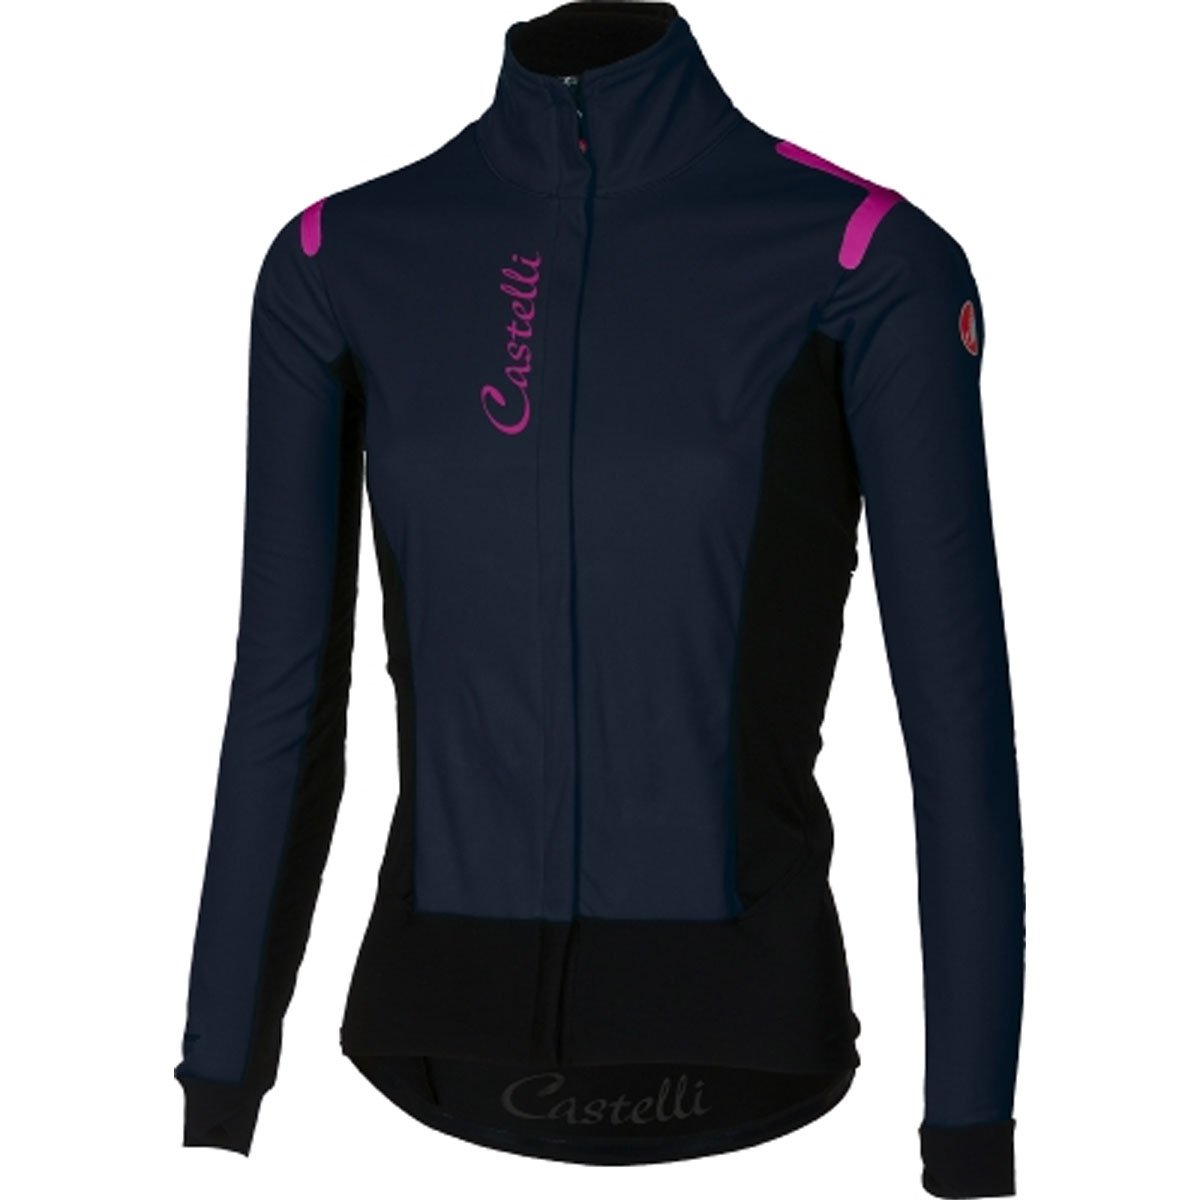 CastelliアルファRos Jacket – Women 's B076ZRJ4P7 X-Small|Dress Blue/Black Dress Blue/Black X-Small